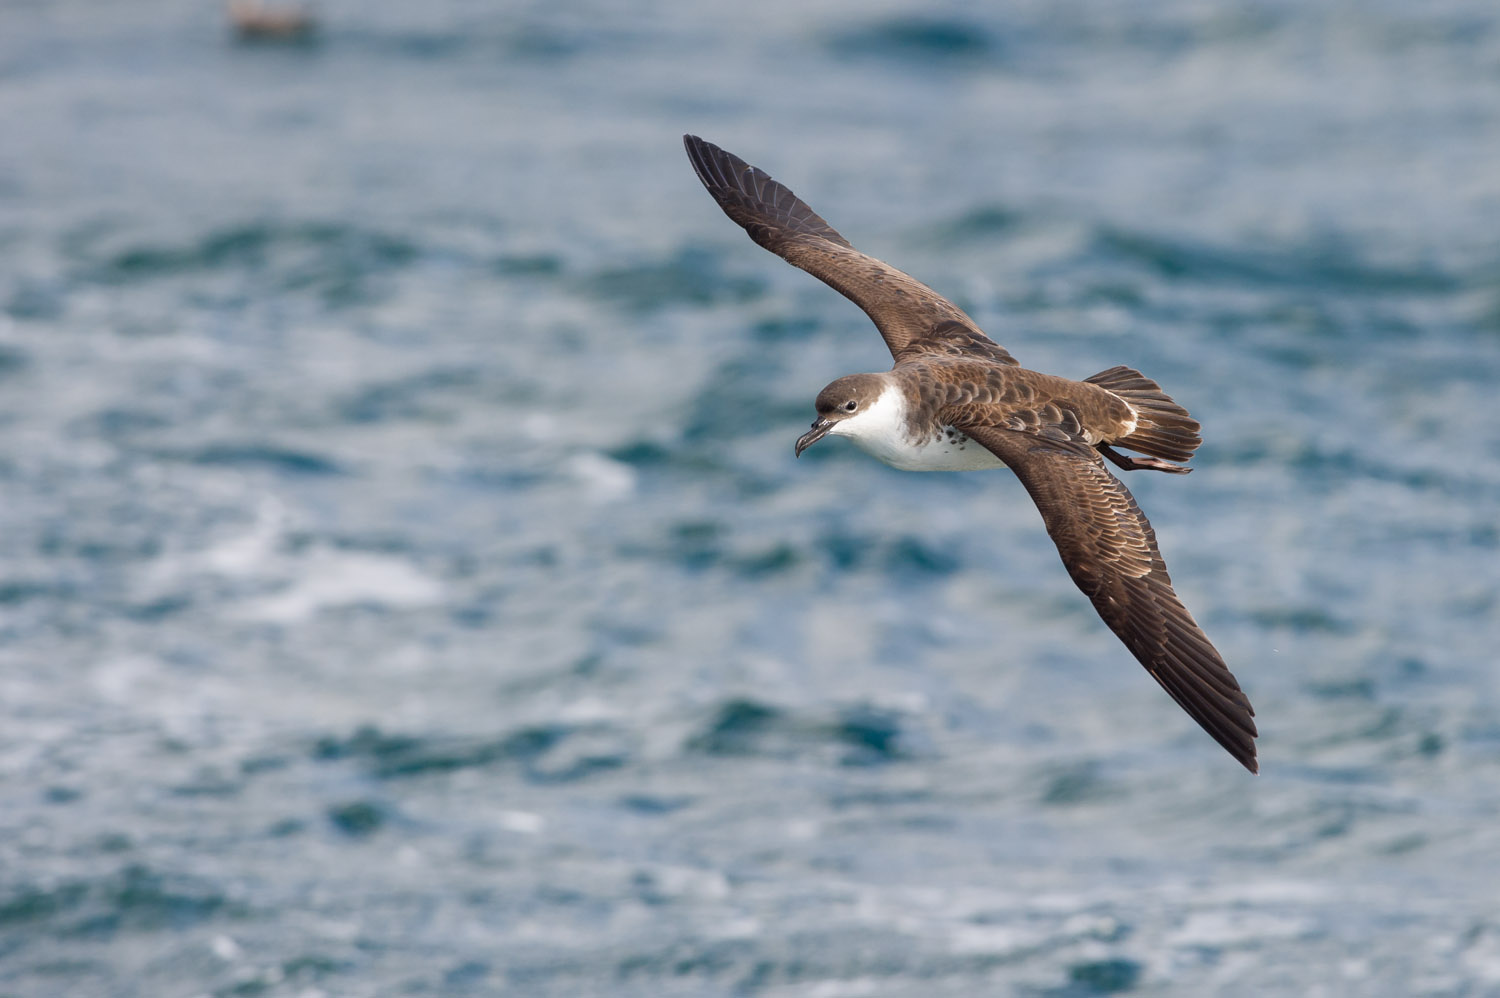 One of the most incredible flying birds I've ever witnessed, this Greater Shearwater can cruise over the waves out at sea at fast speeds all while making it look completely effortless. Taken approximately 10 miles off the coast of Lewes, DE  .